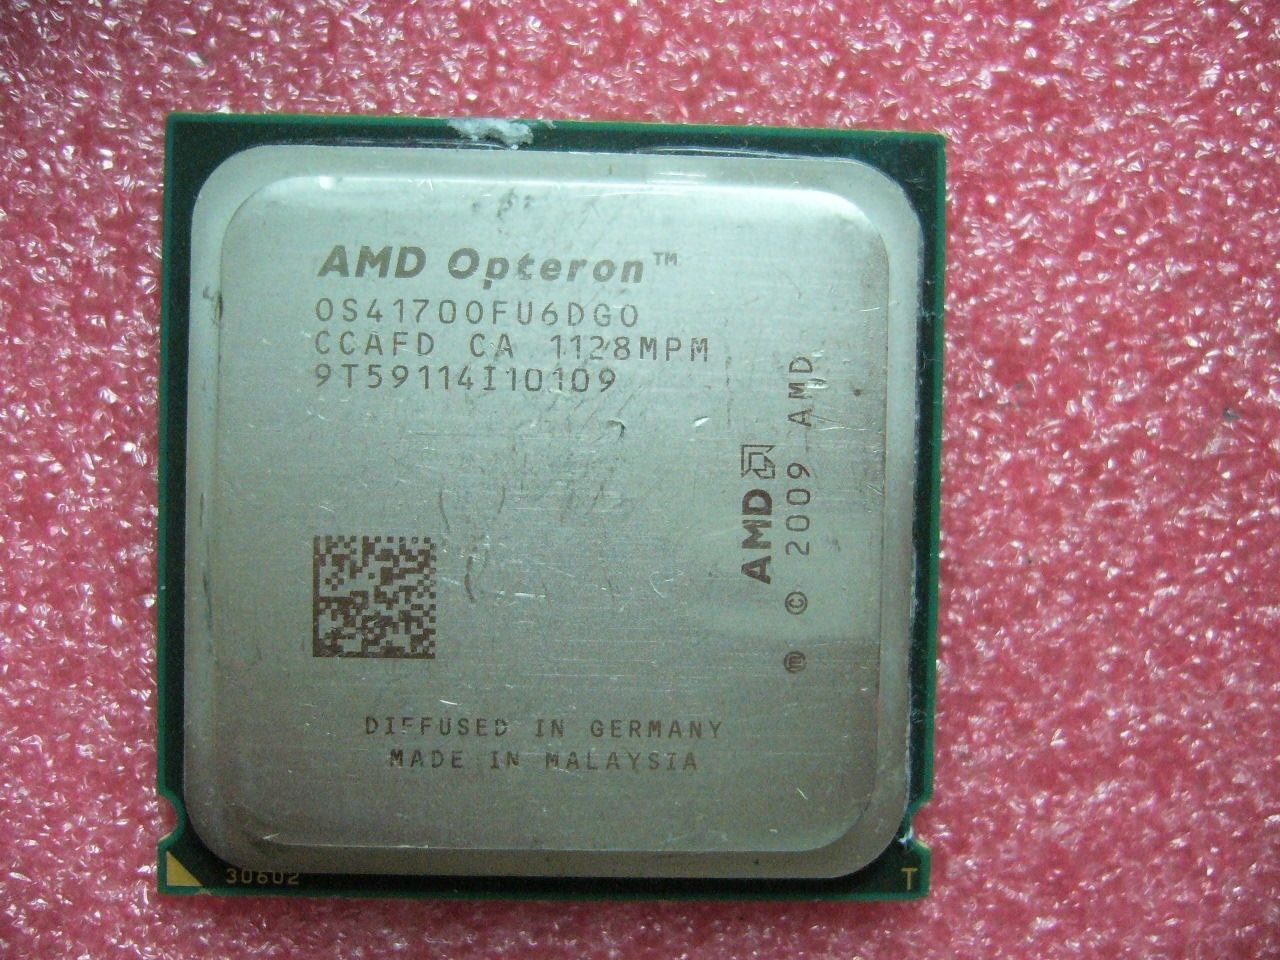 QTY 1x AMD Opteron 4170 HE 2.1 GHz Six Core (OS4170OFU6DGO) CPU Socket C32